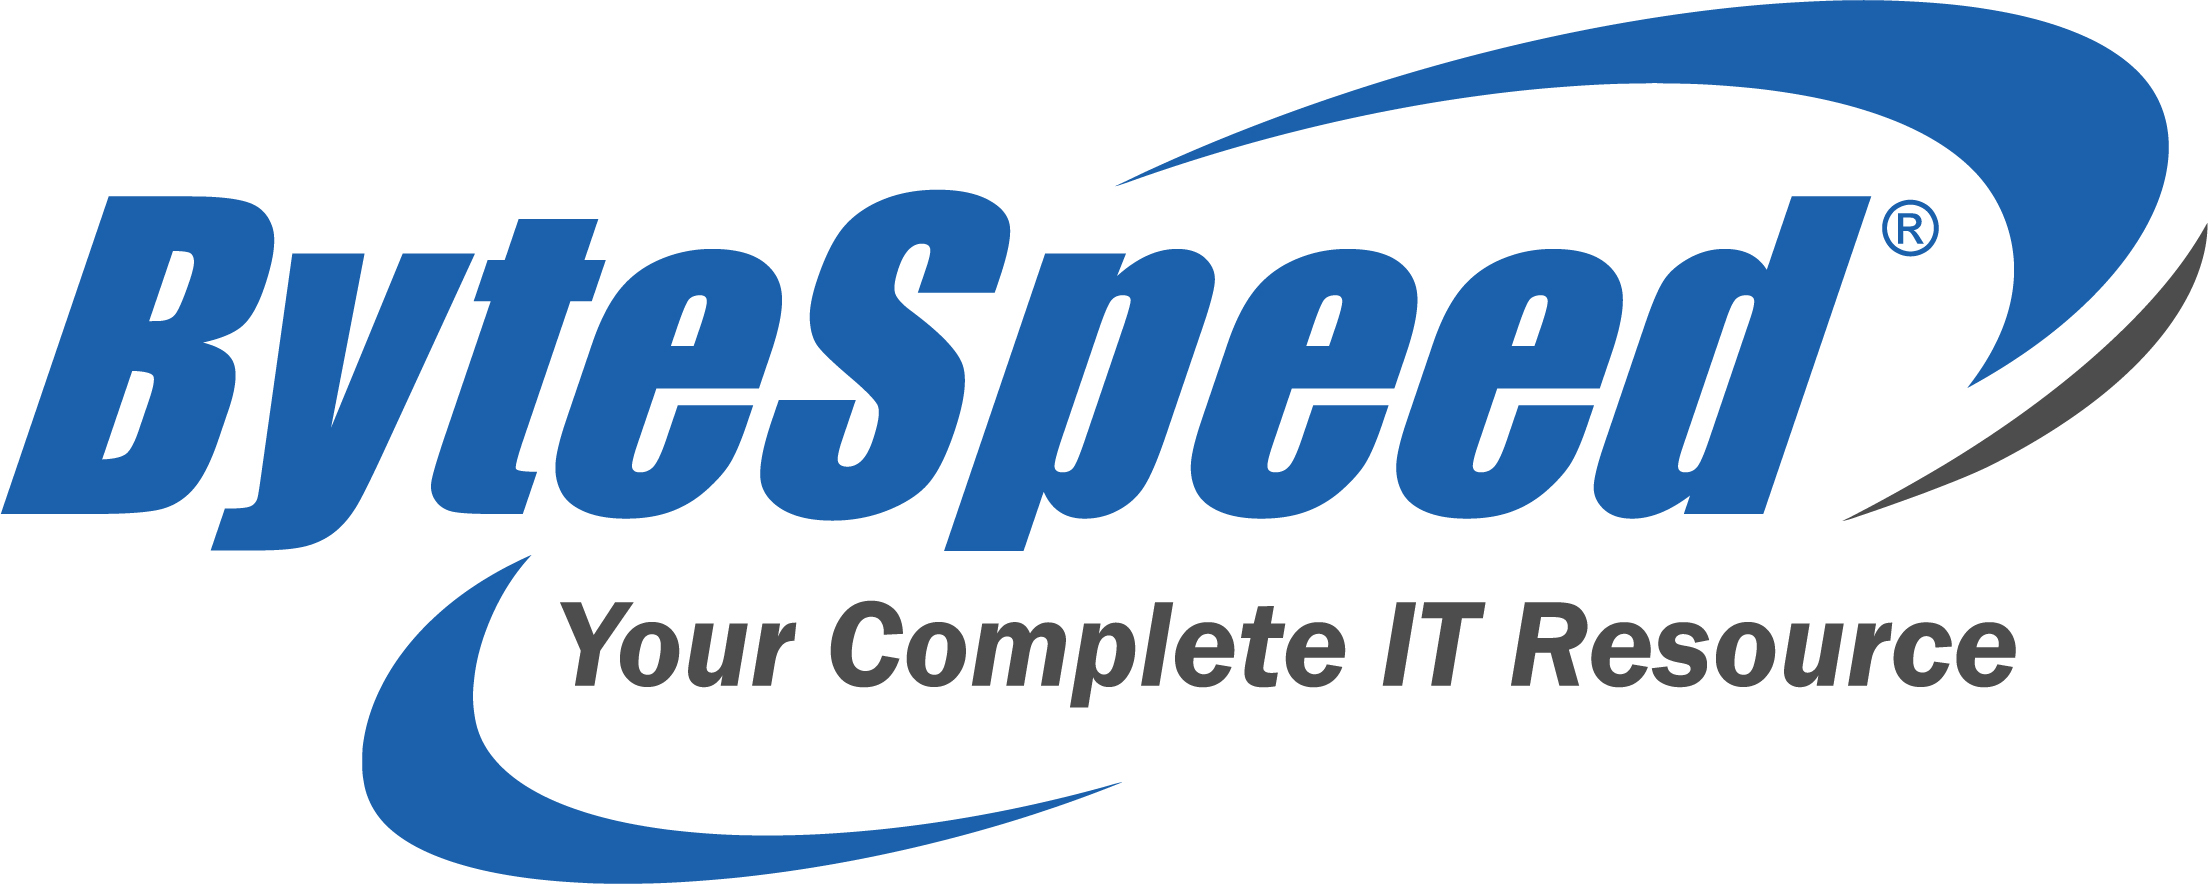 ByteSpeed with tagline